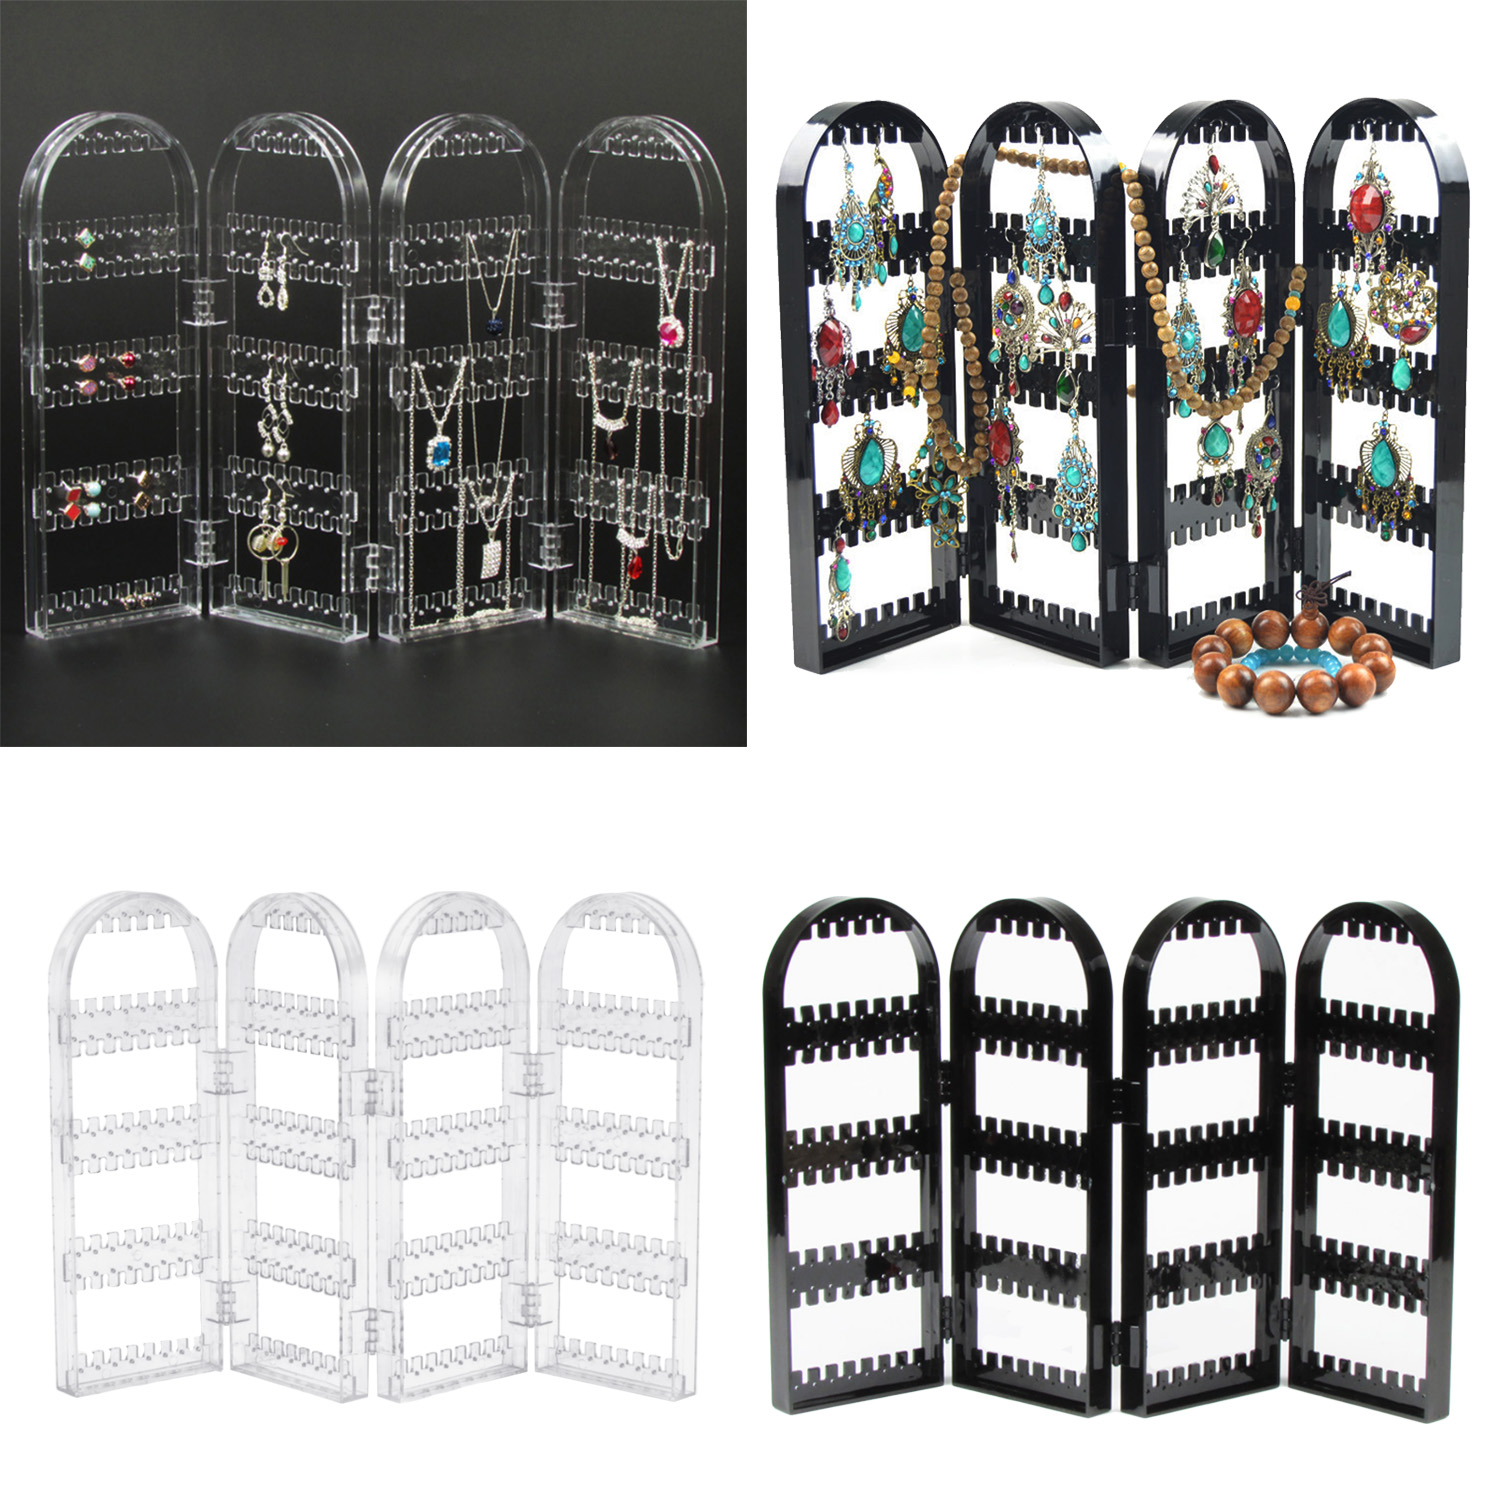 Plastic Jewellery Earrings Display Organizer 4-Panel 240 Holes Foldable Stand Holder Store Window Mall Home Display Organizer